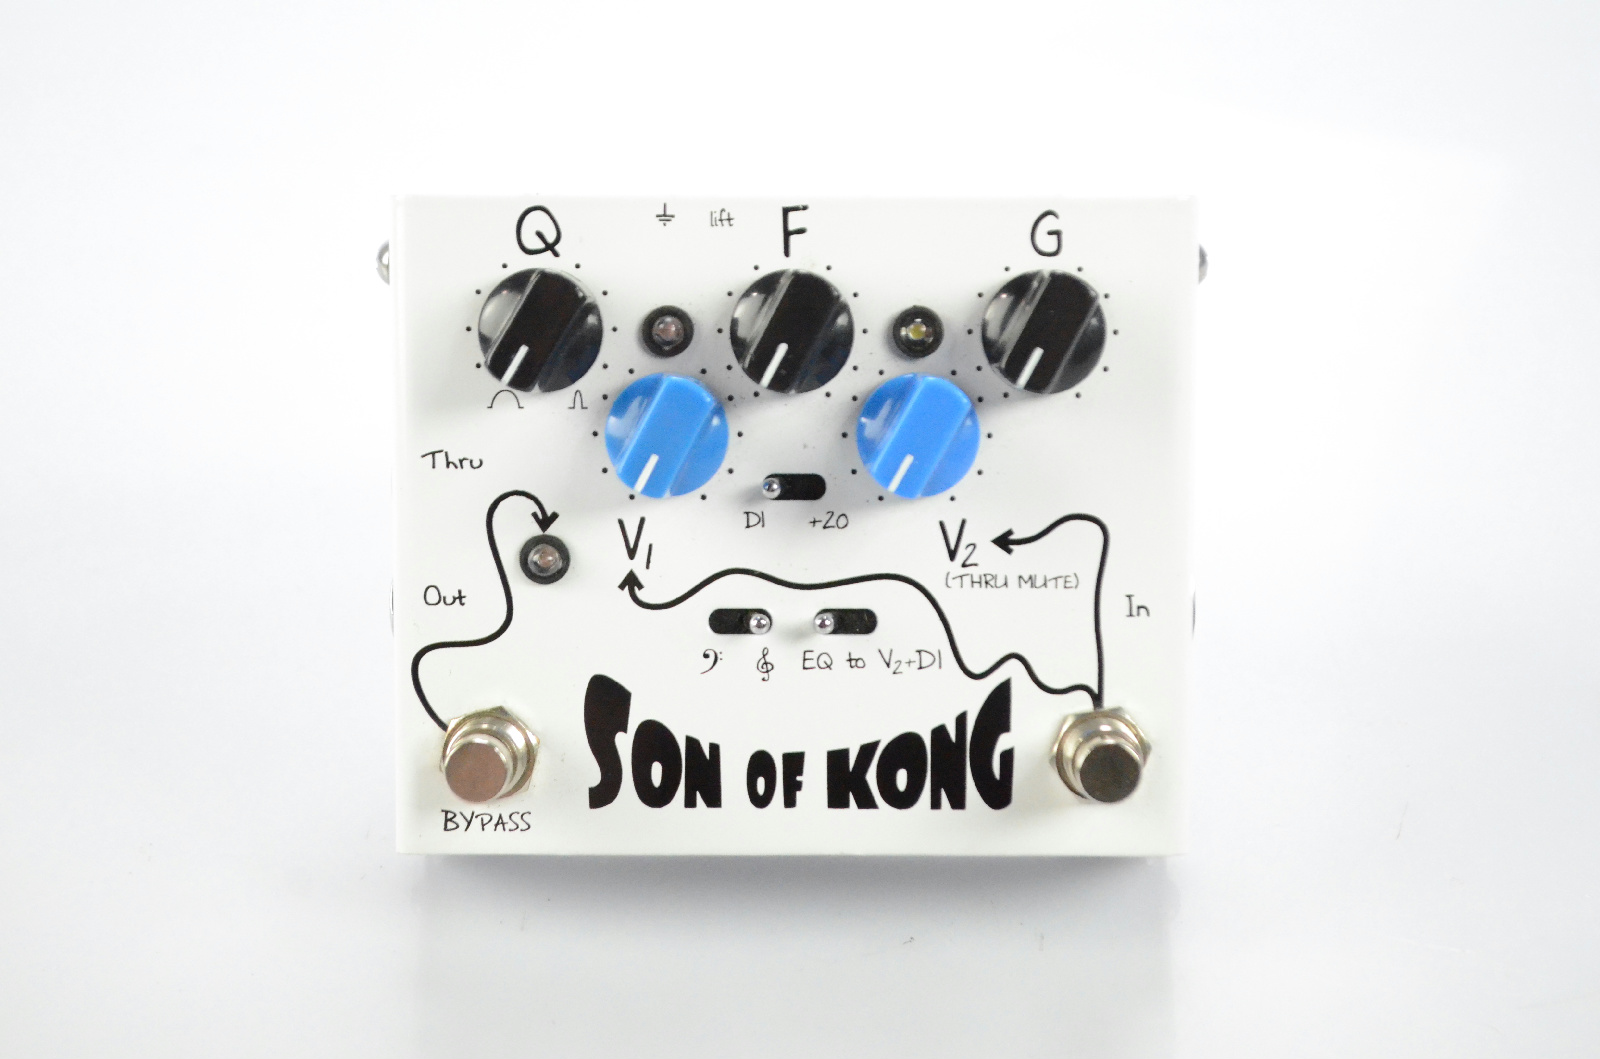 Spontaneous Audio Devices Son of Kong Owned by Kato Khandwala #33610